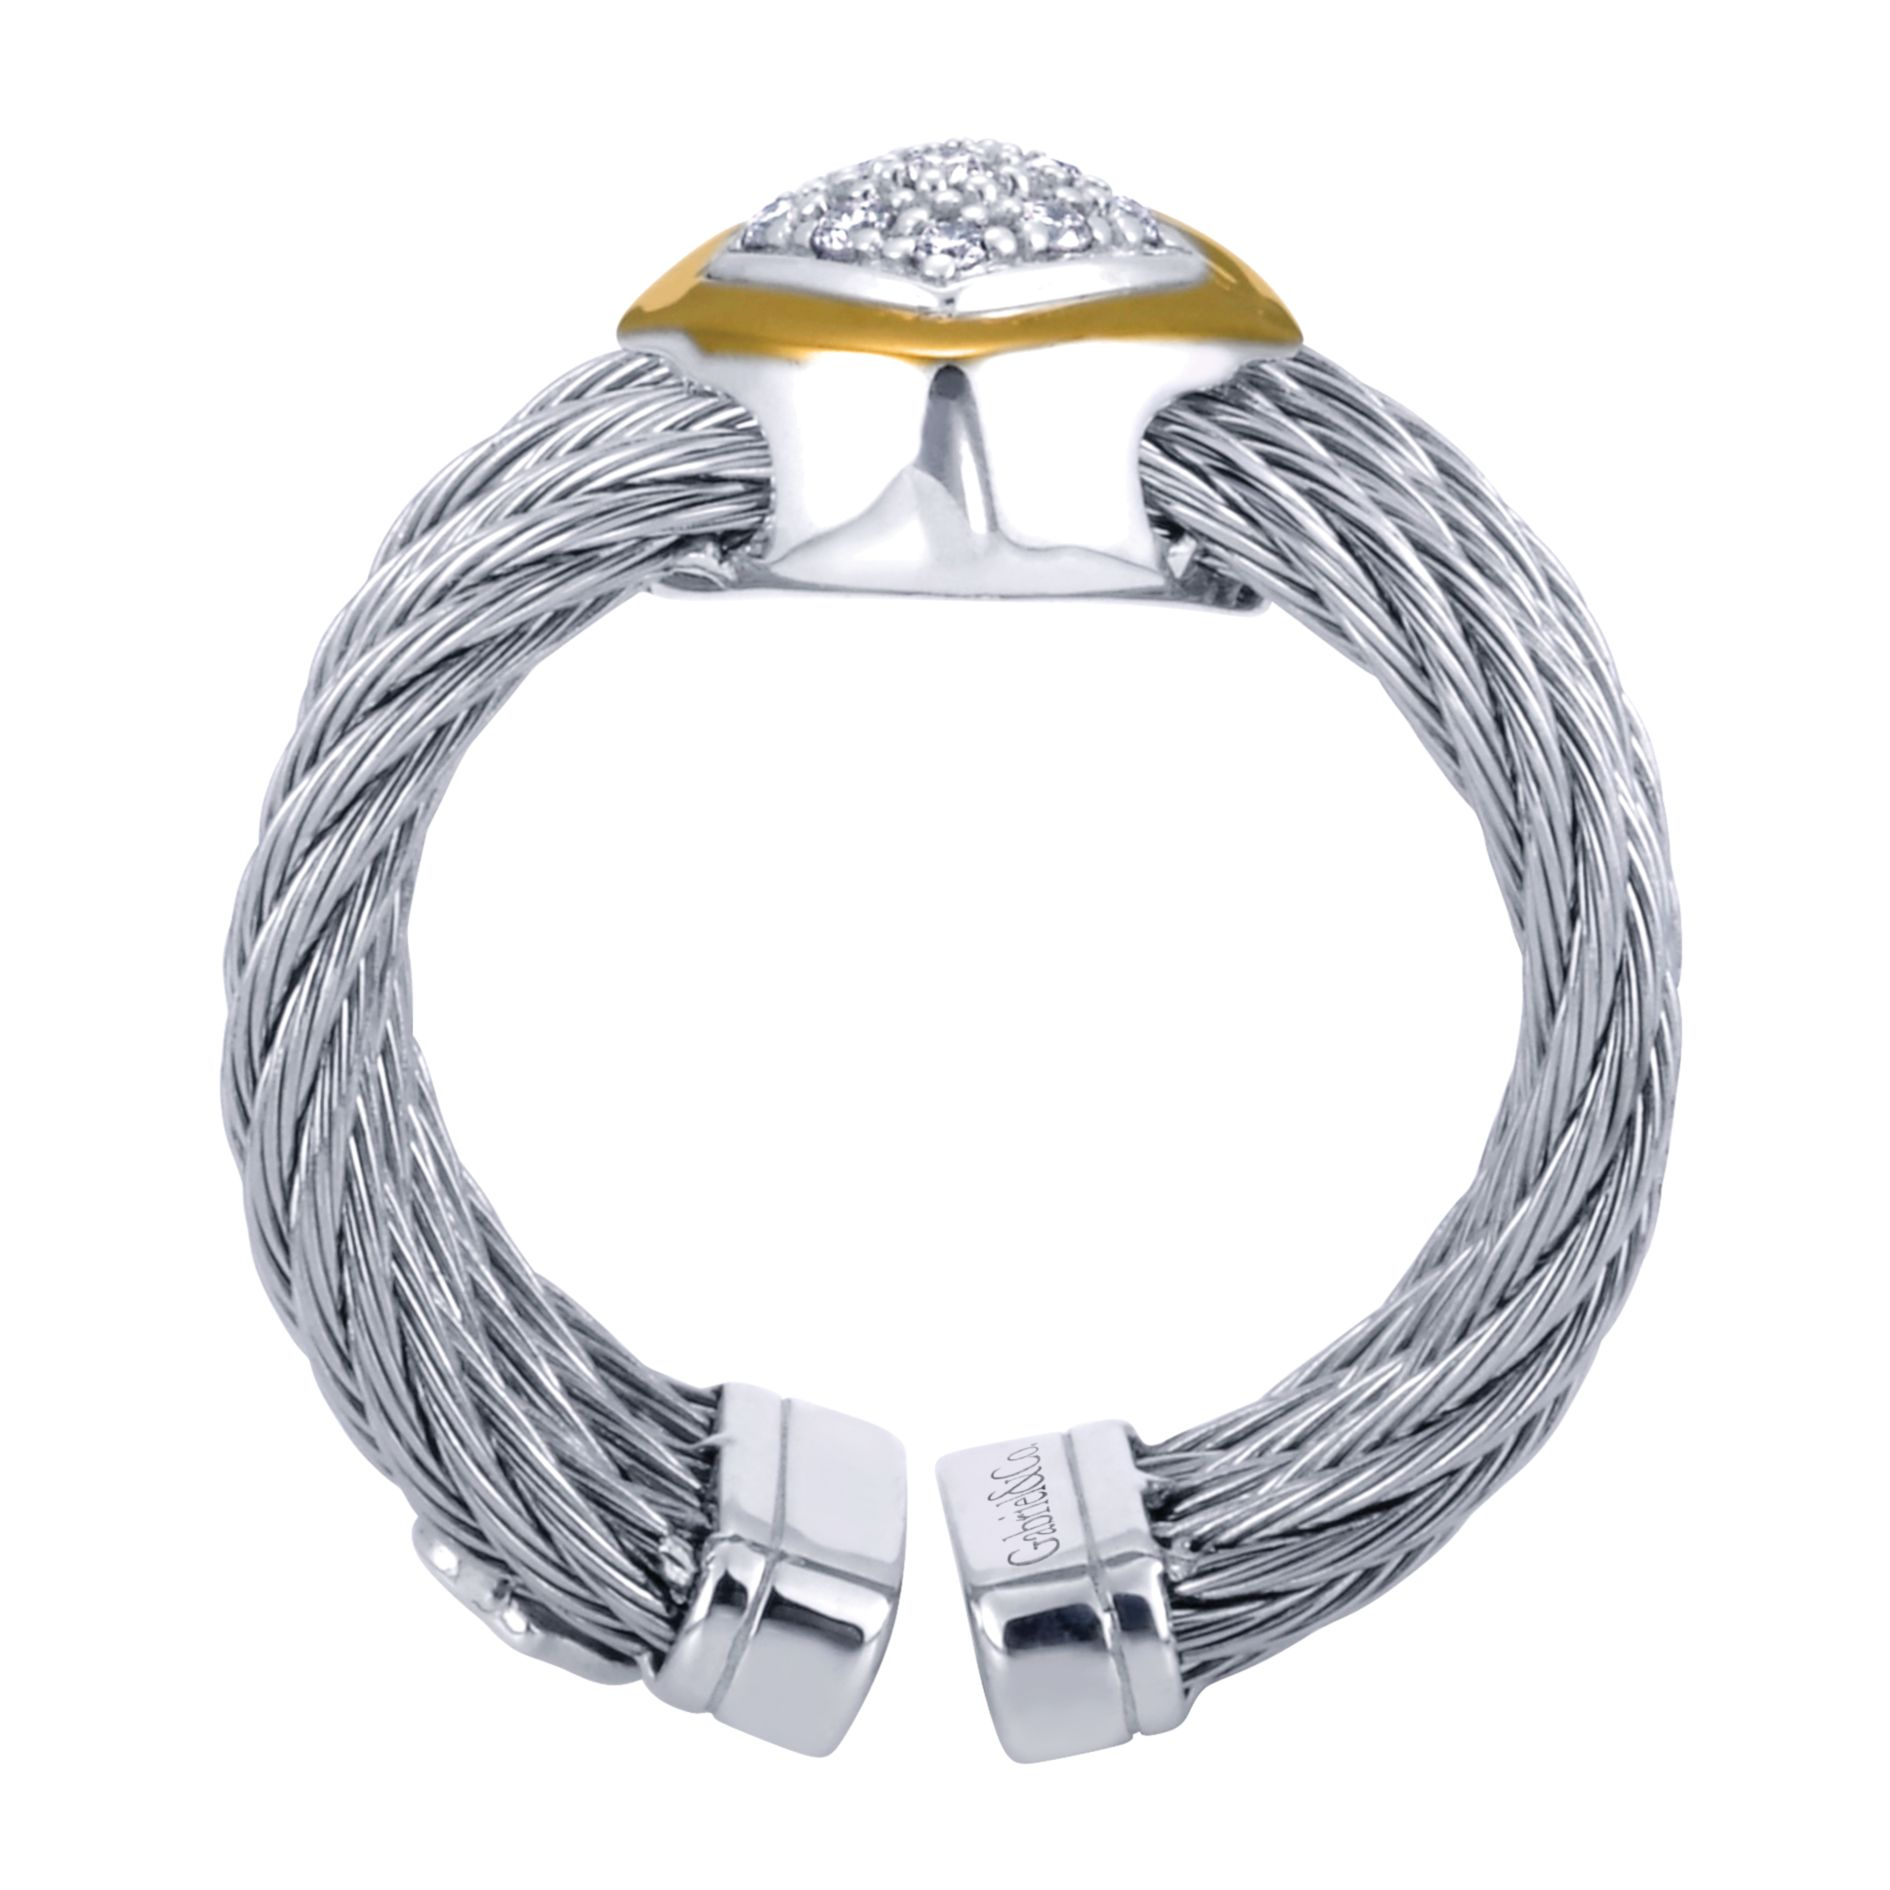 Rings - TWISTED CABLE DIAMOND LADIES RING - image #2